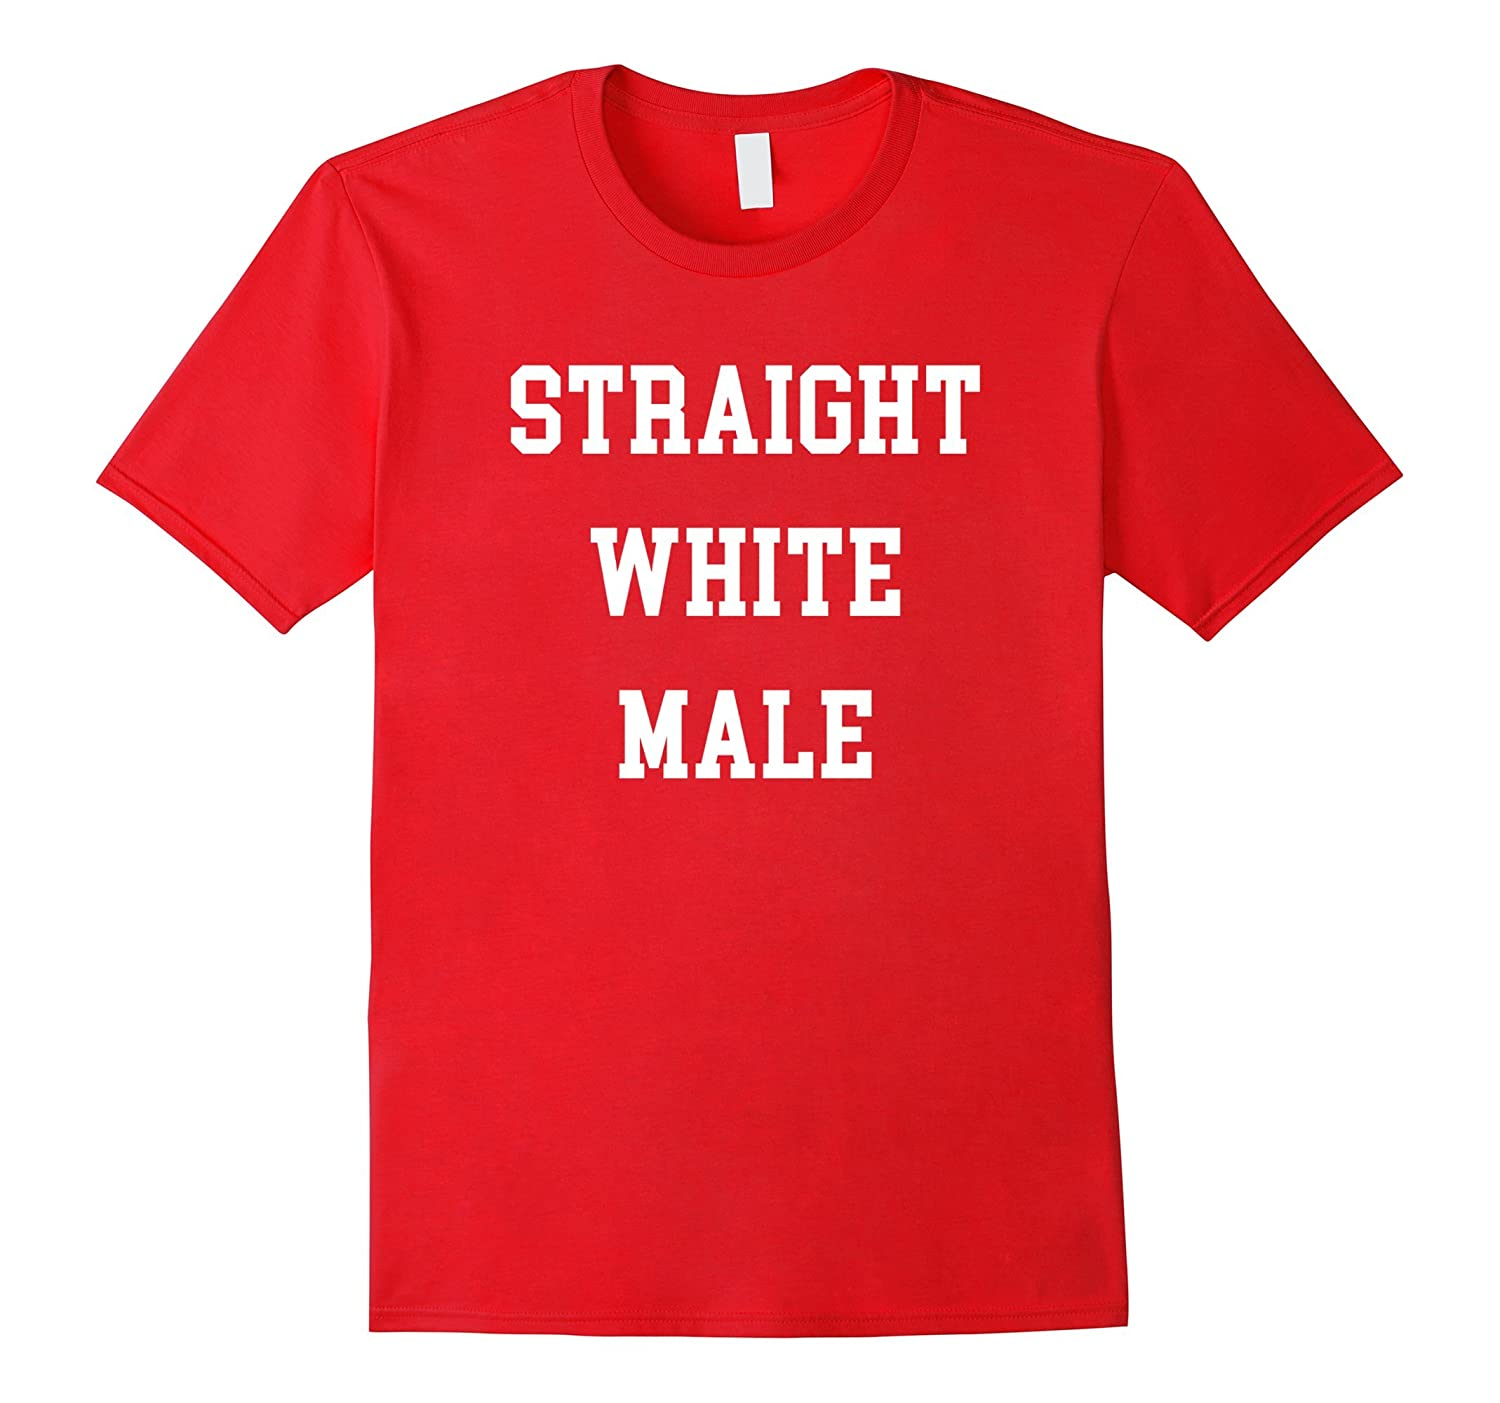 Straight White Male - Alt-Right Anti-Antifa Shirt